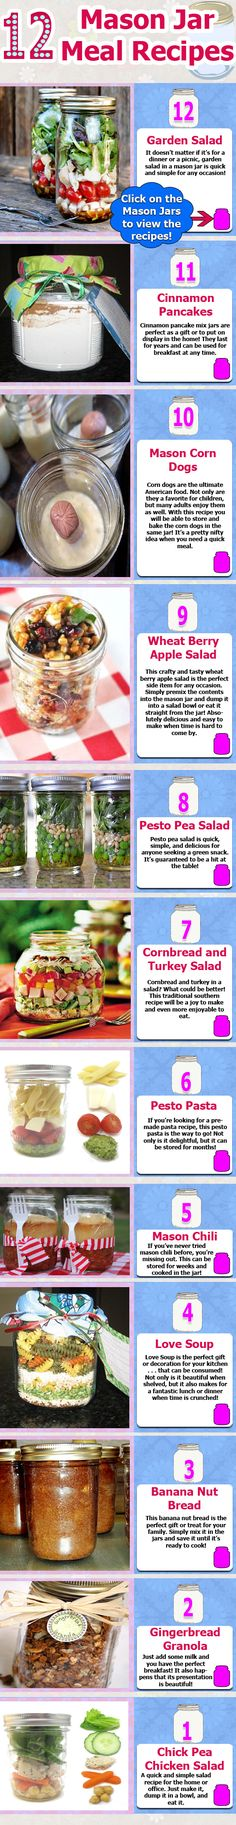 12 Mason Jar Recipes for camping, picnics, or whatever